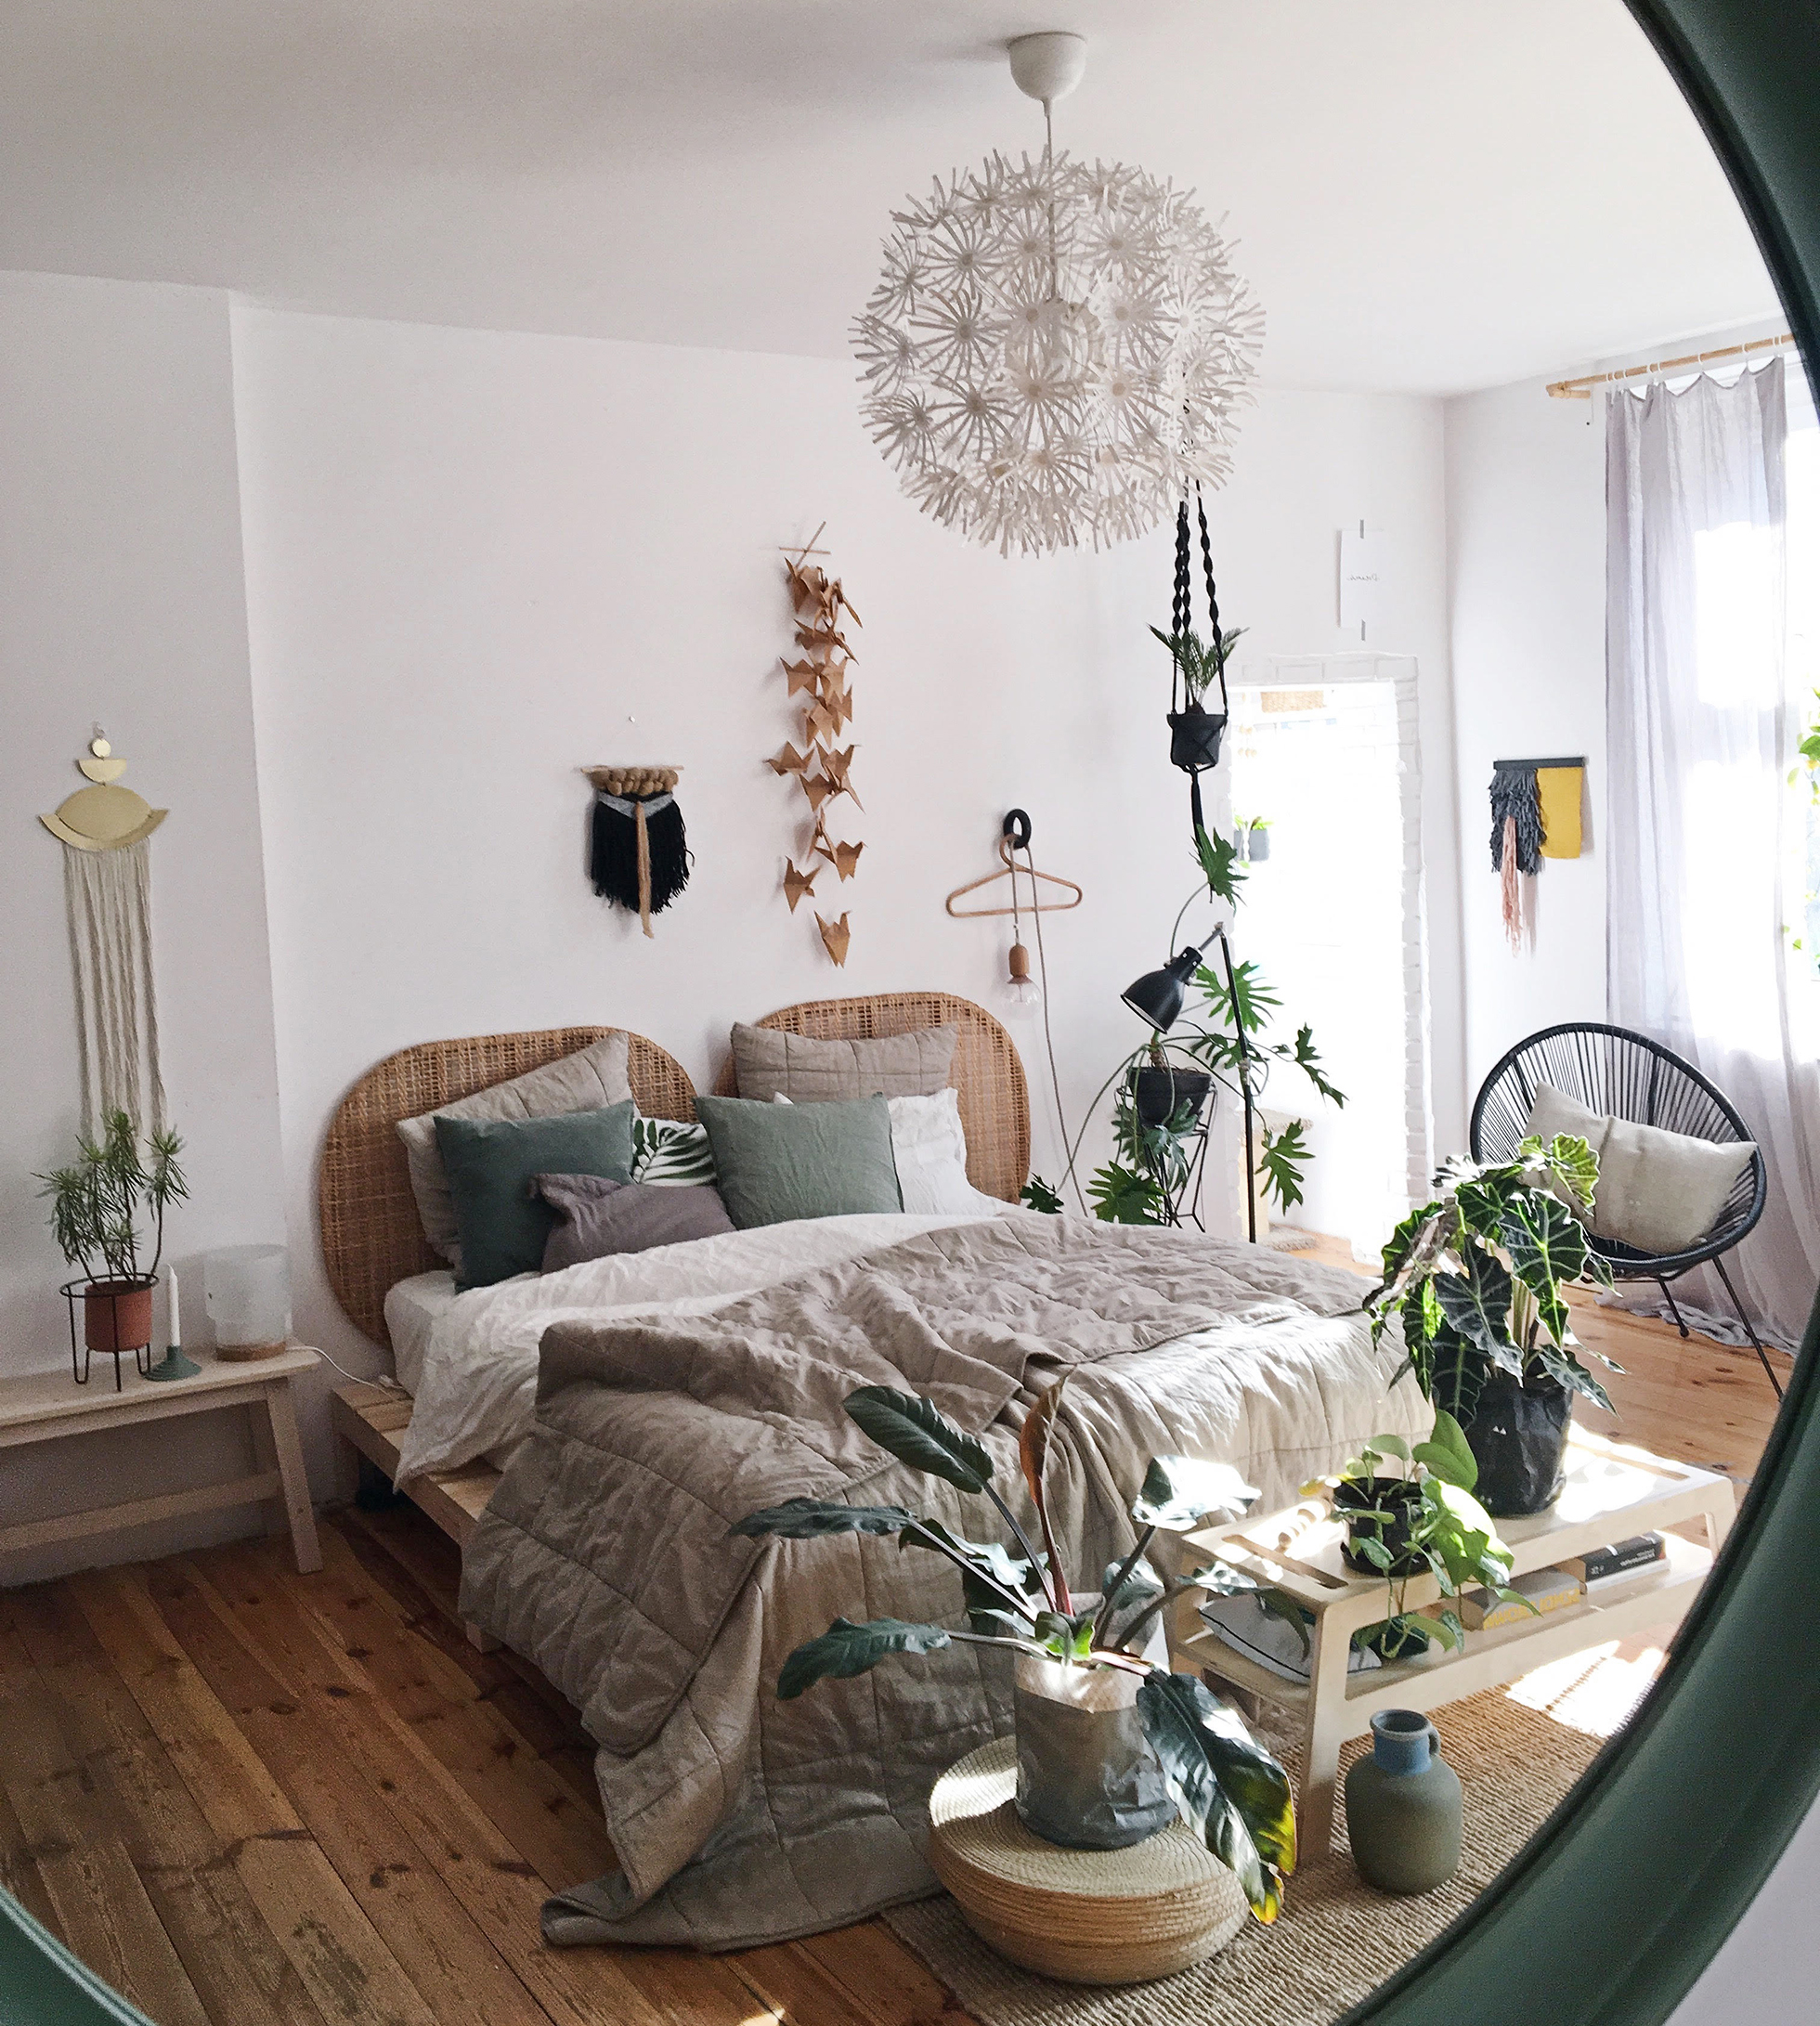 View of boho bedroom with southern exposure in mirror